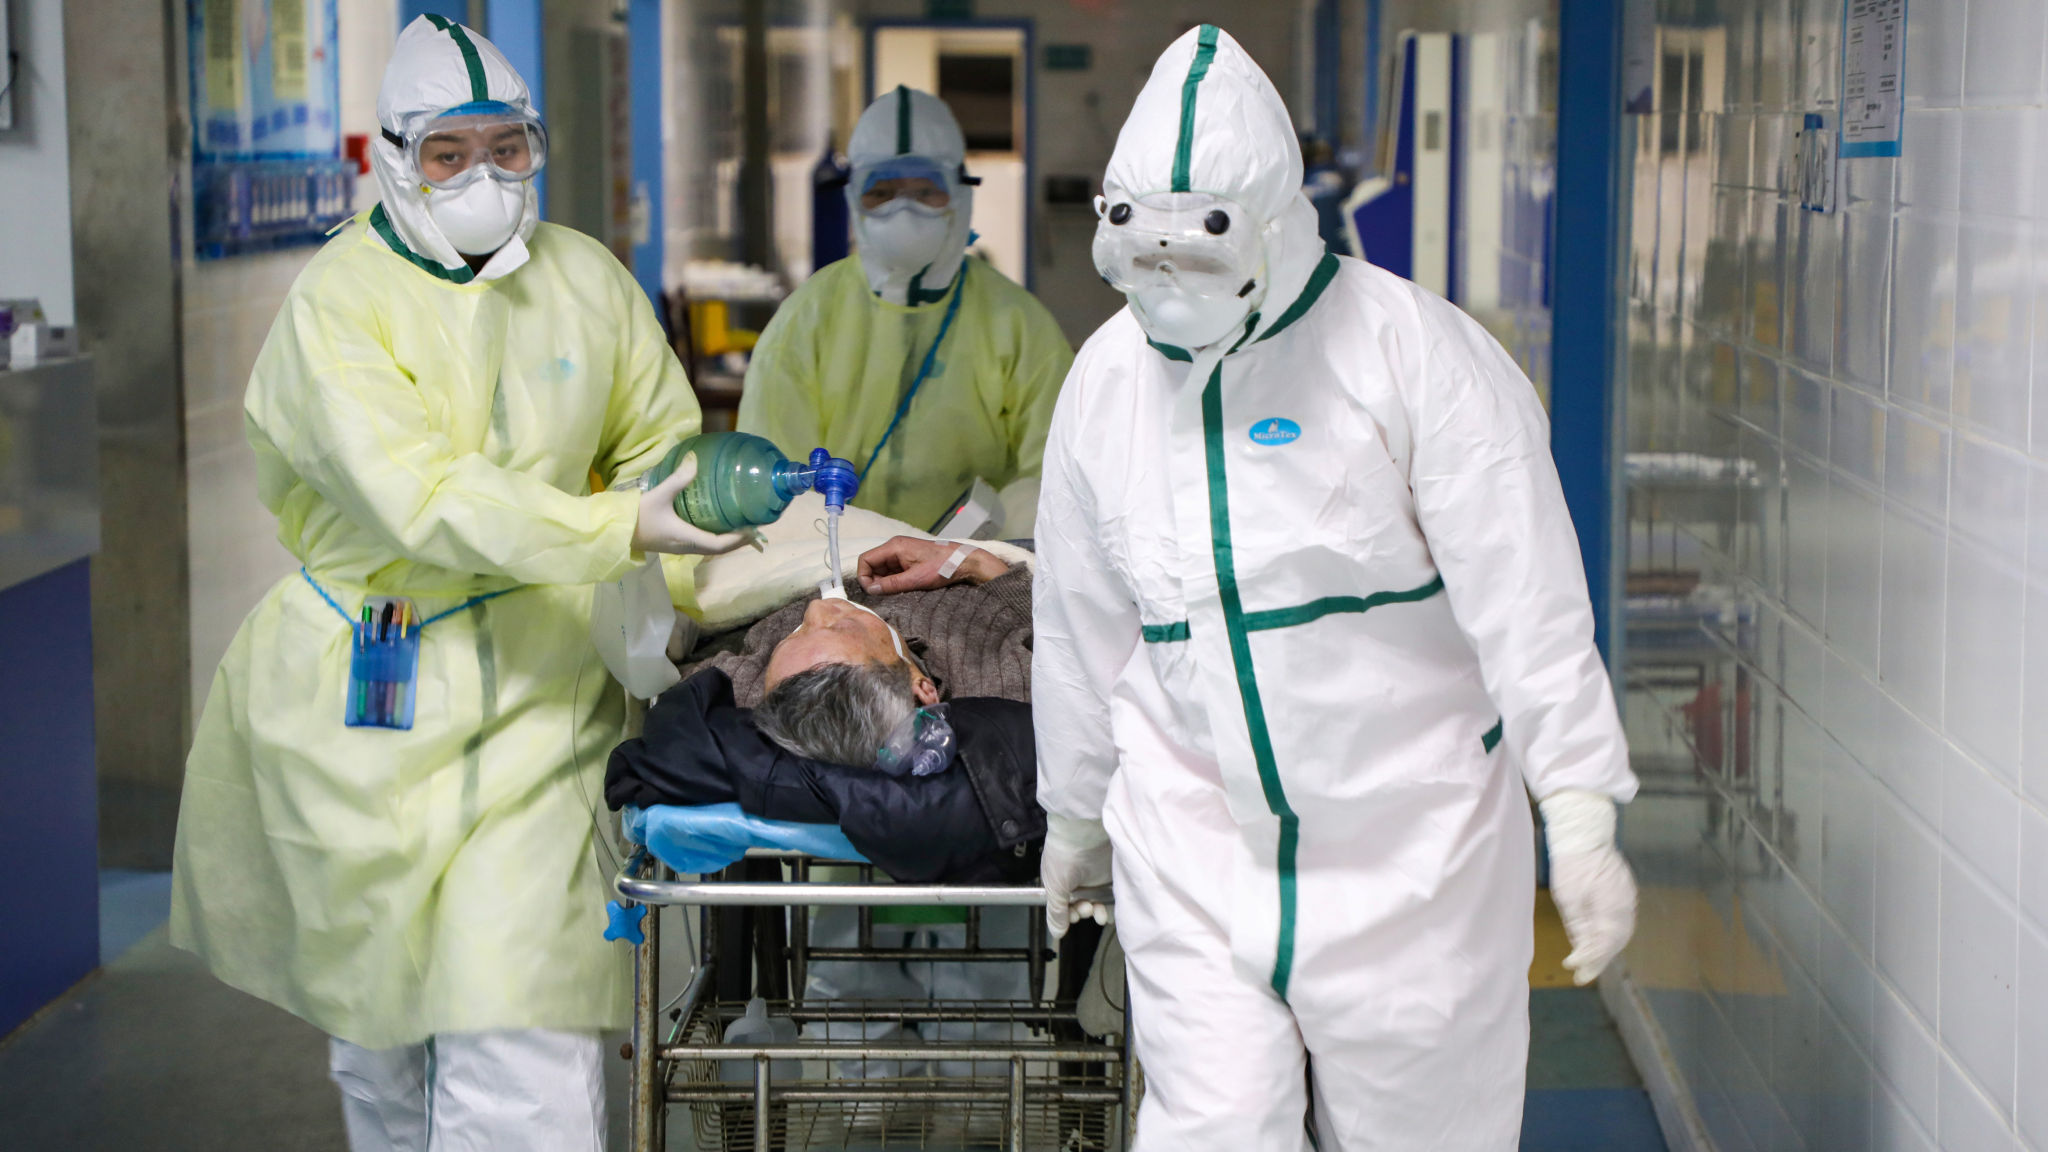 Medical workers in protective suits move a patient at an isolated ward of a hospital in Caidian district following an outbreak of the novel coronavirus in Wuhan